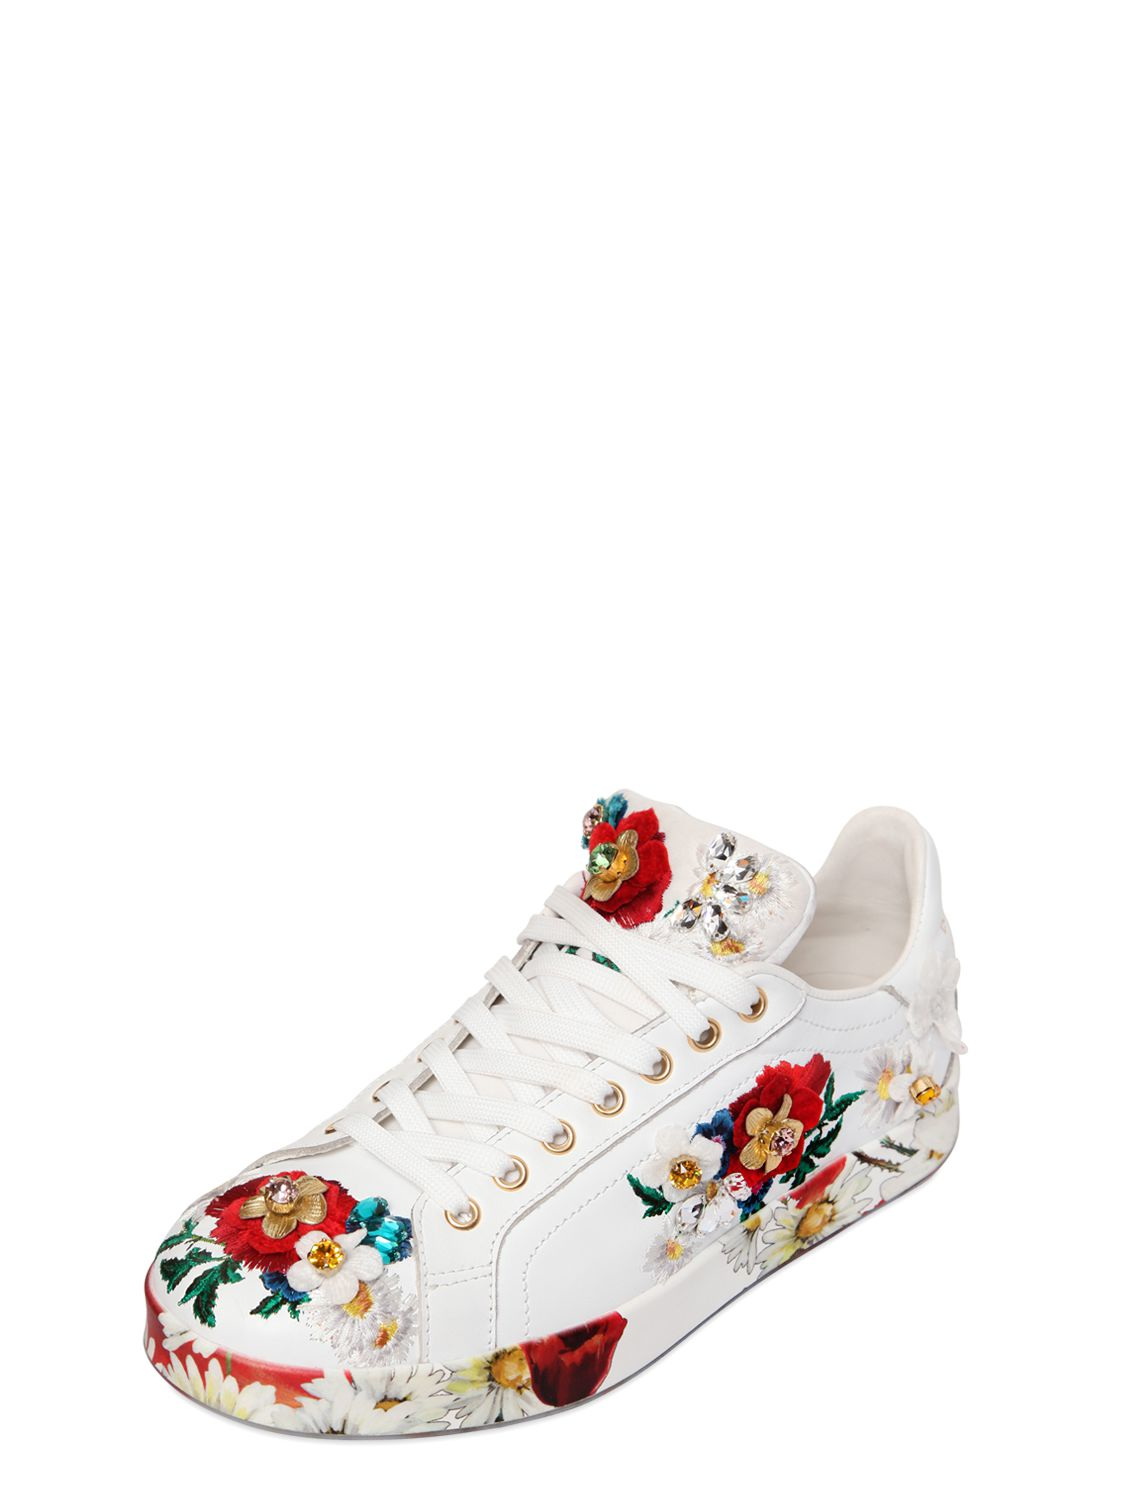 Dolce   Gabbana 20mm Floral Embellished Leather Sneakers in White - Lyst 77b72928d199